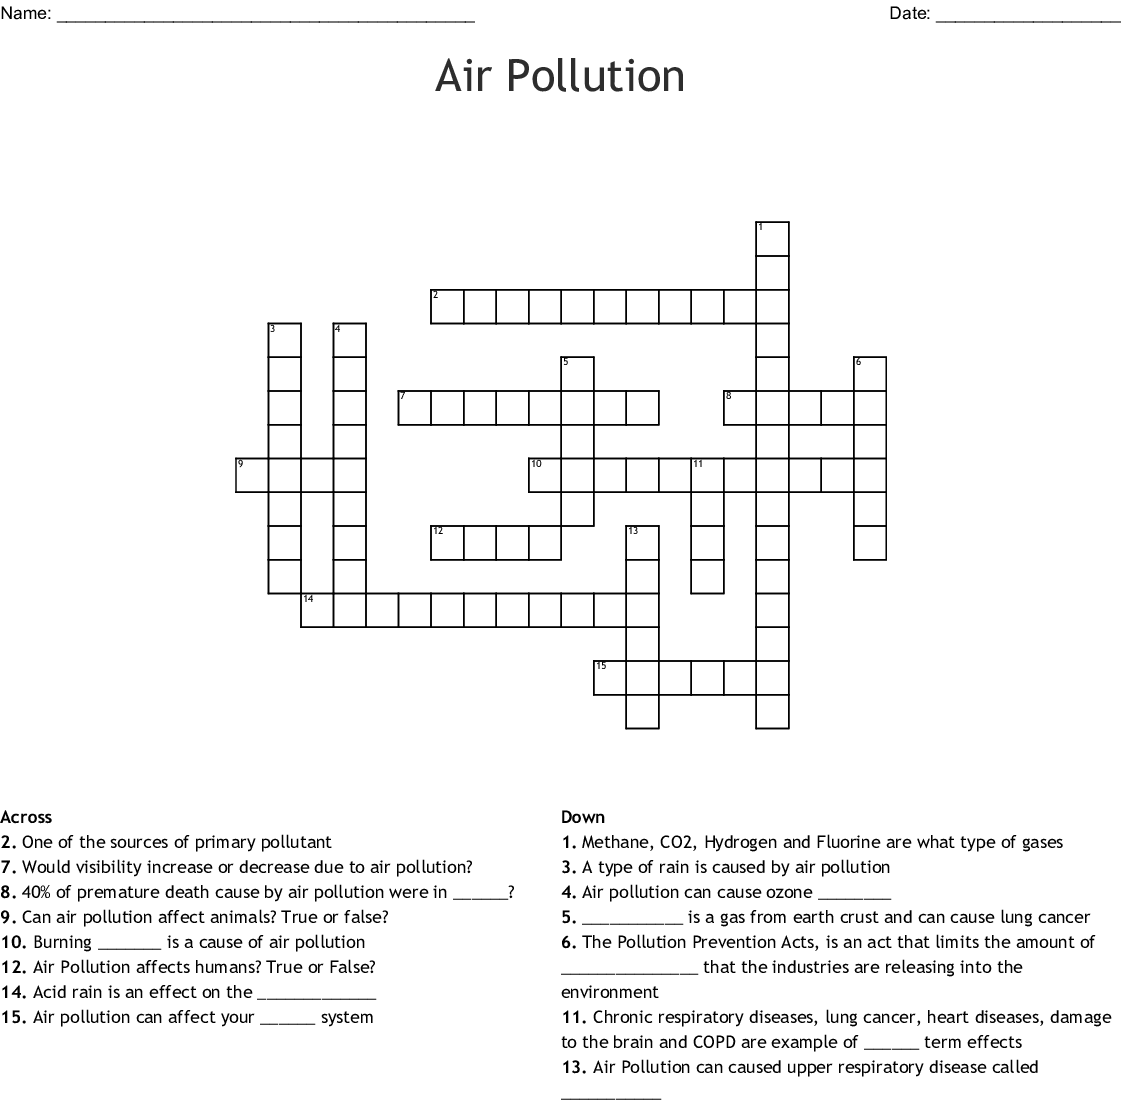 Air Pollution Global Warming Crossword Puzzle